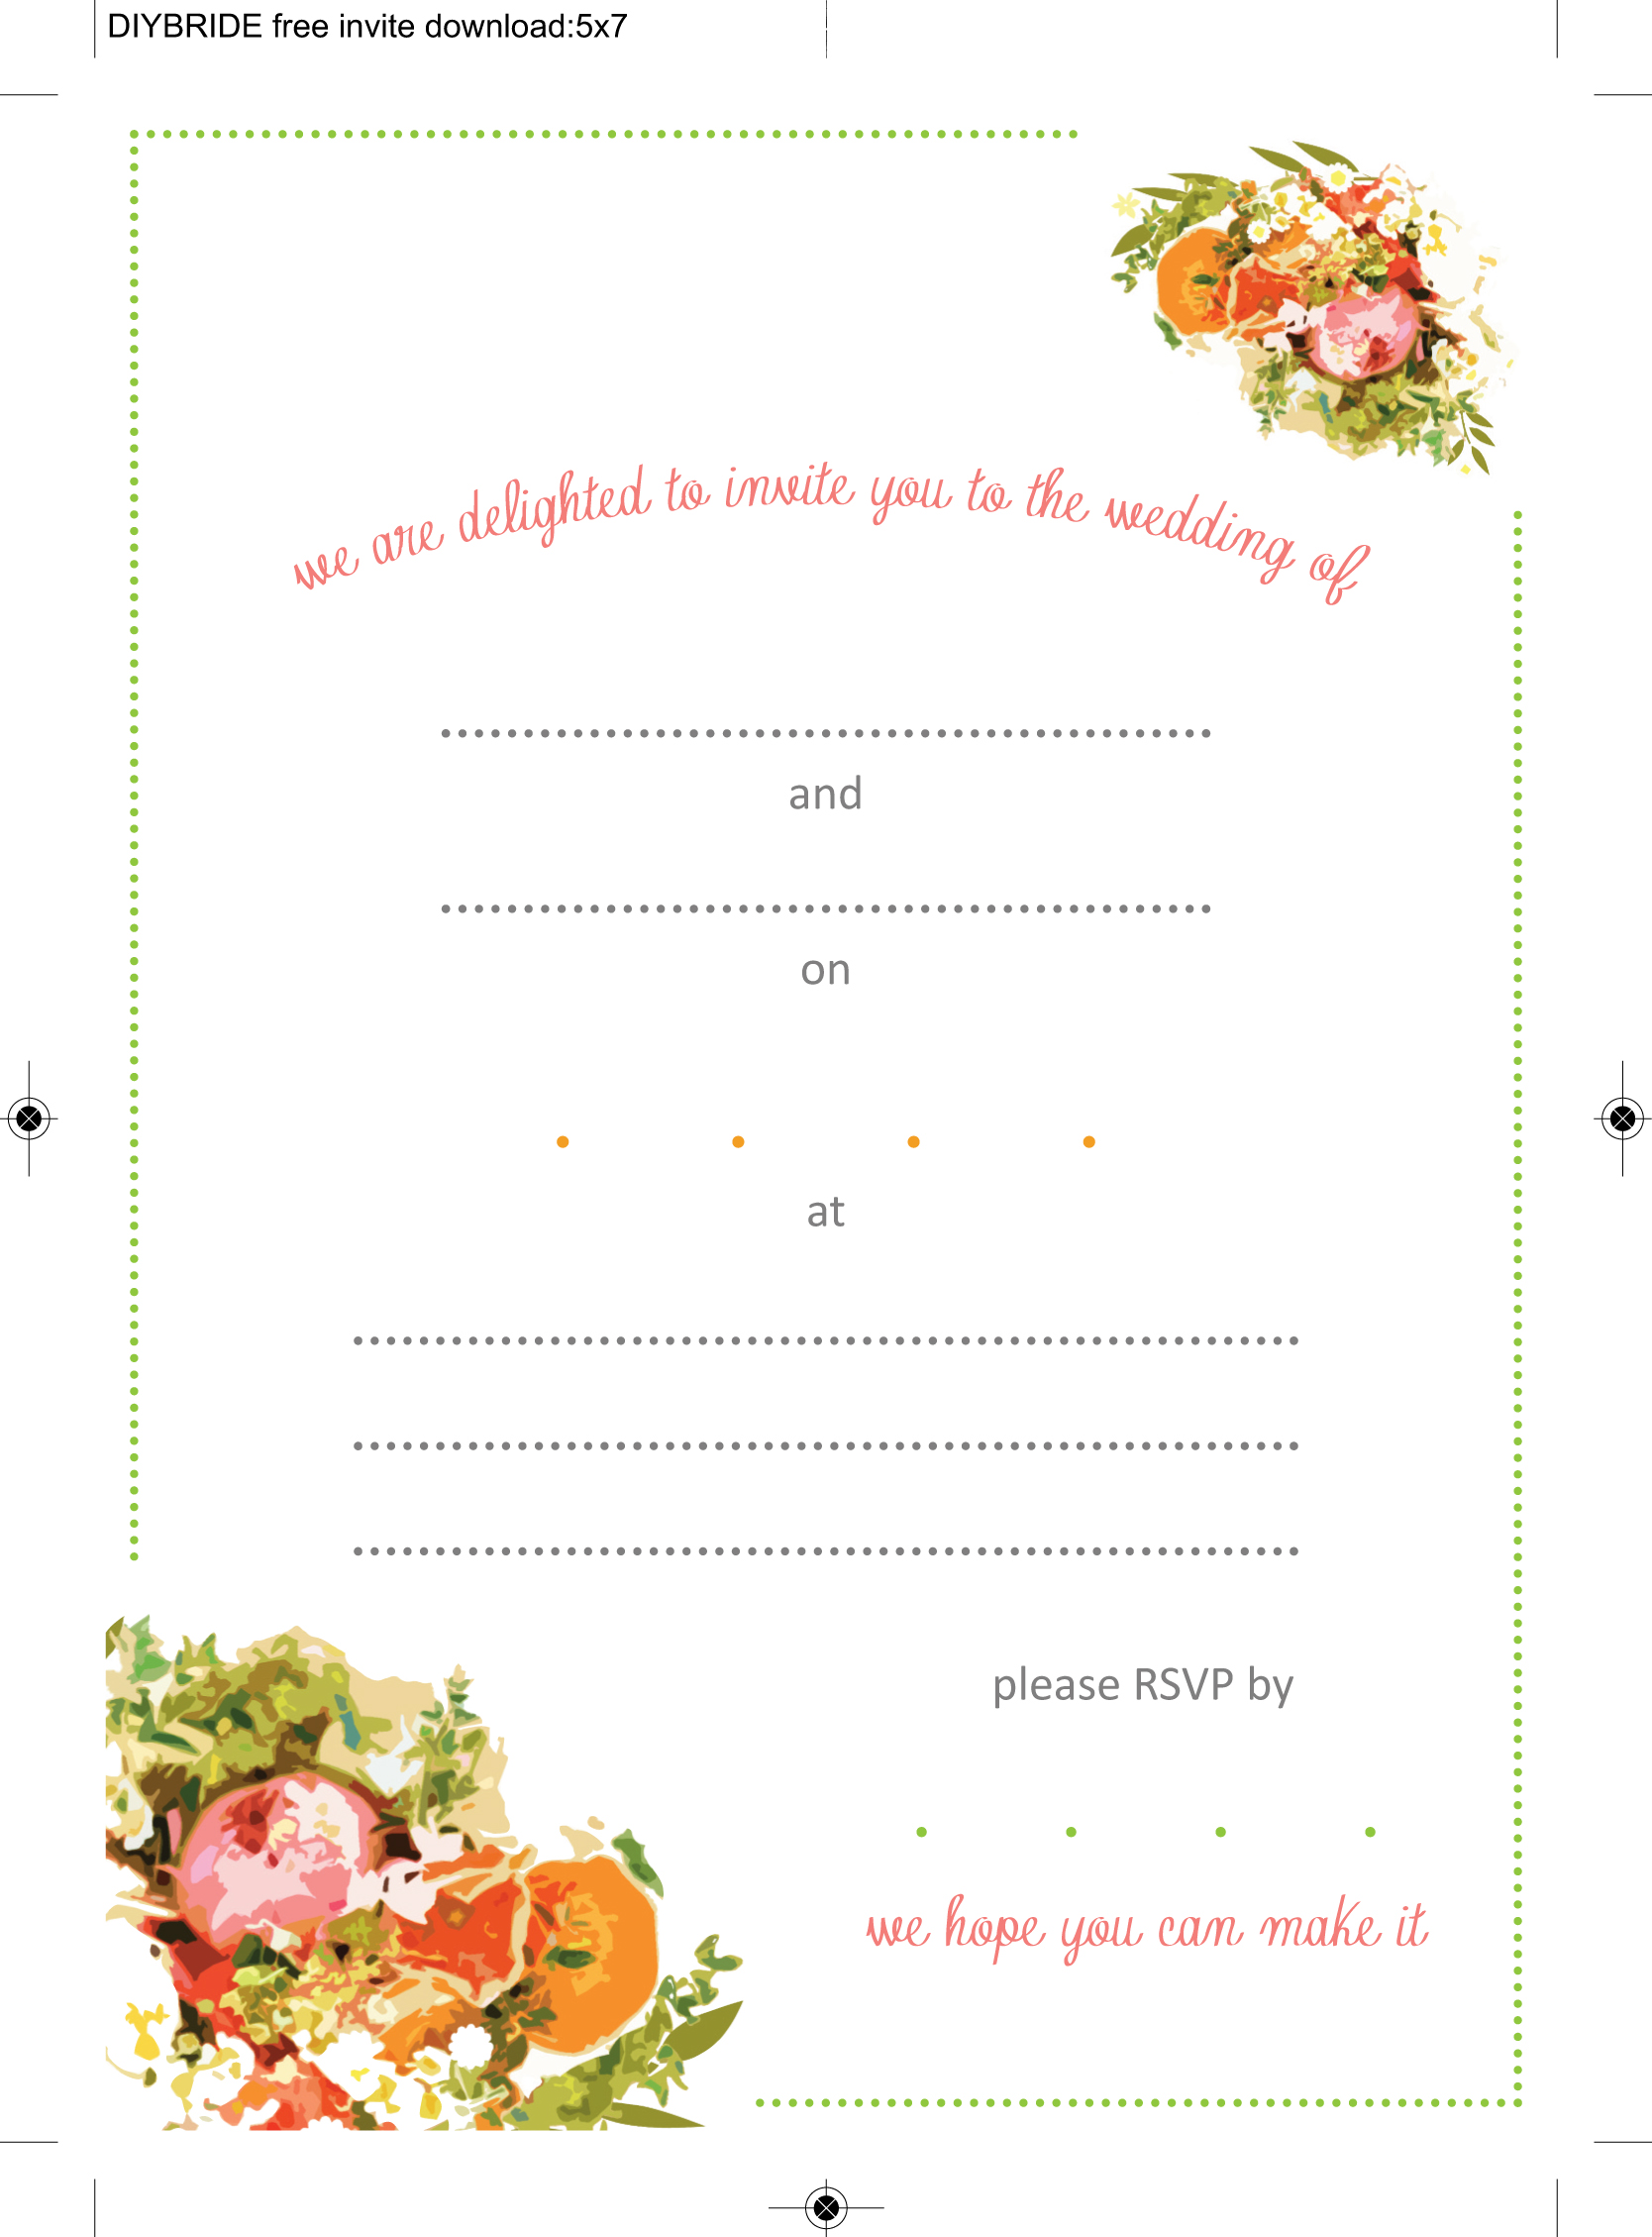 Wedding Invitation Templates That Are Cute And Easy To Make The - Card template free: postcard wedding invitations template